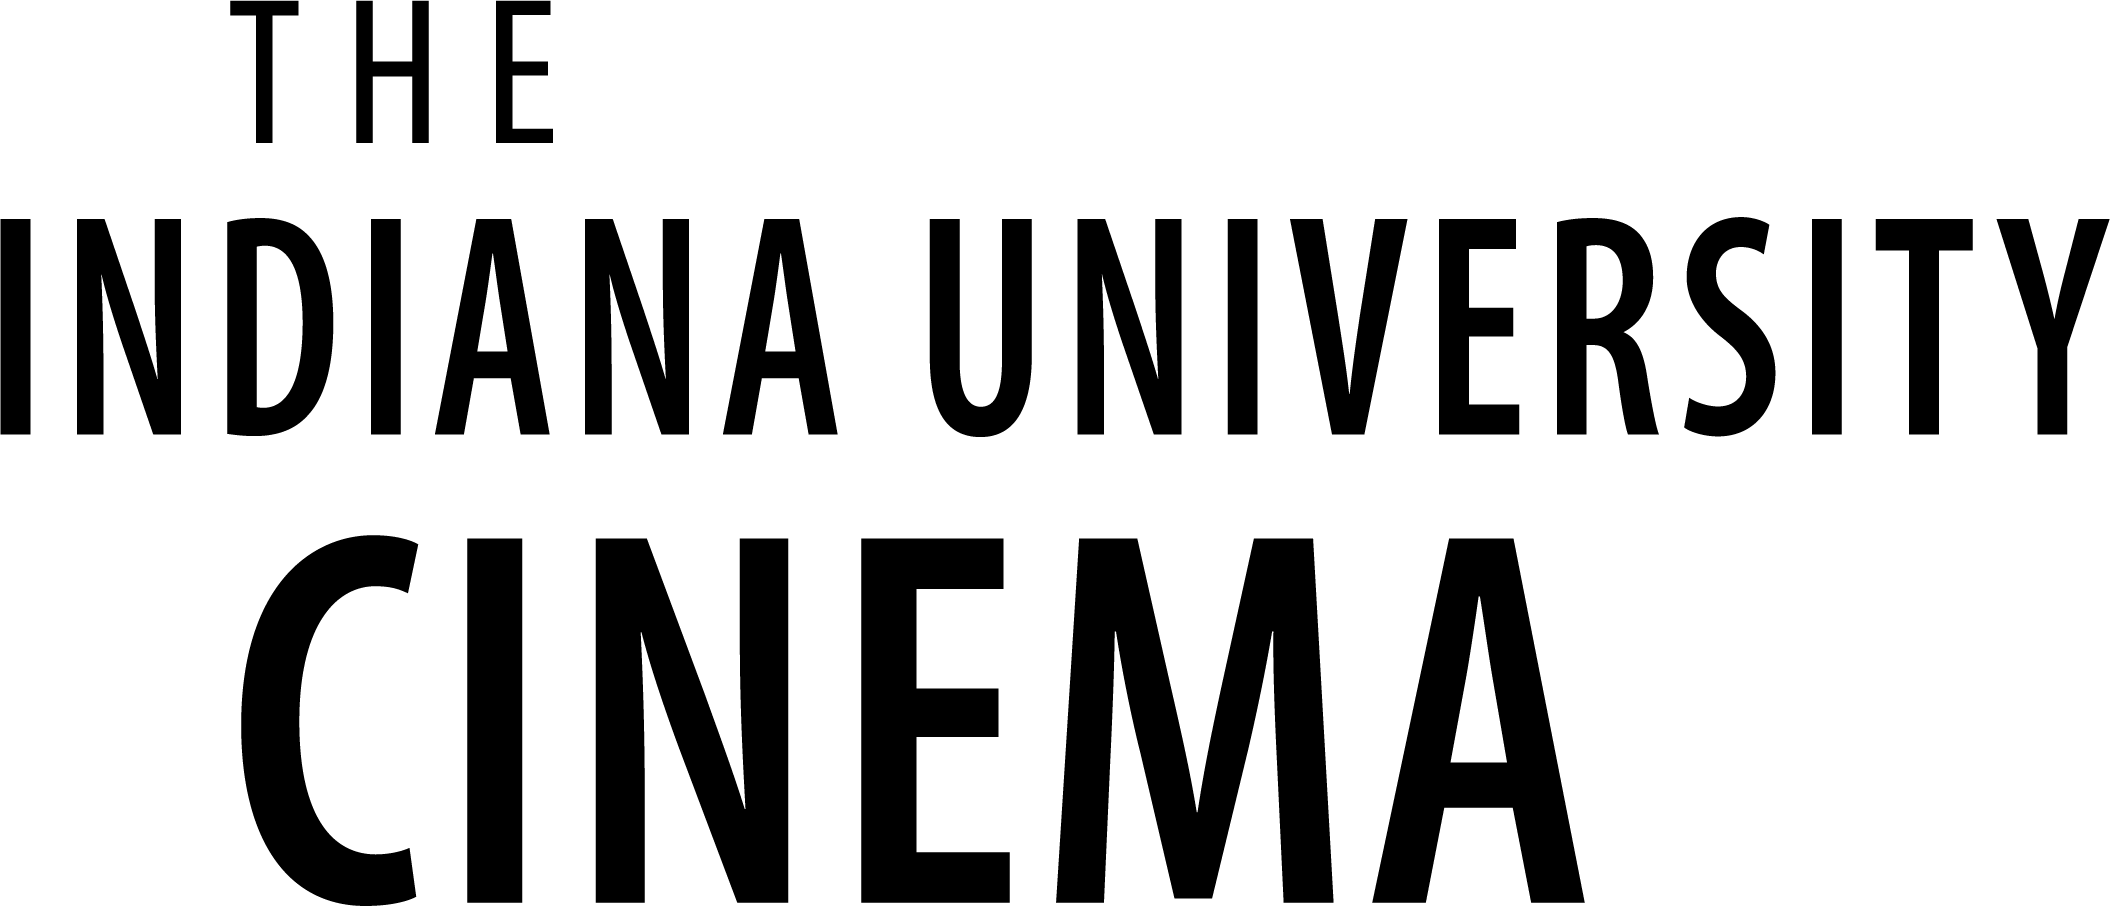 IUCinema_blackLogo.png